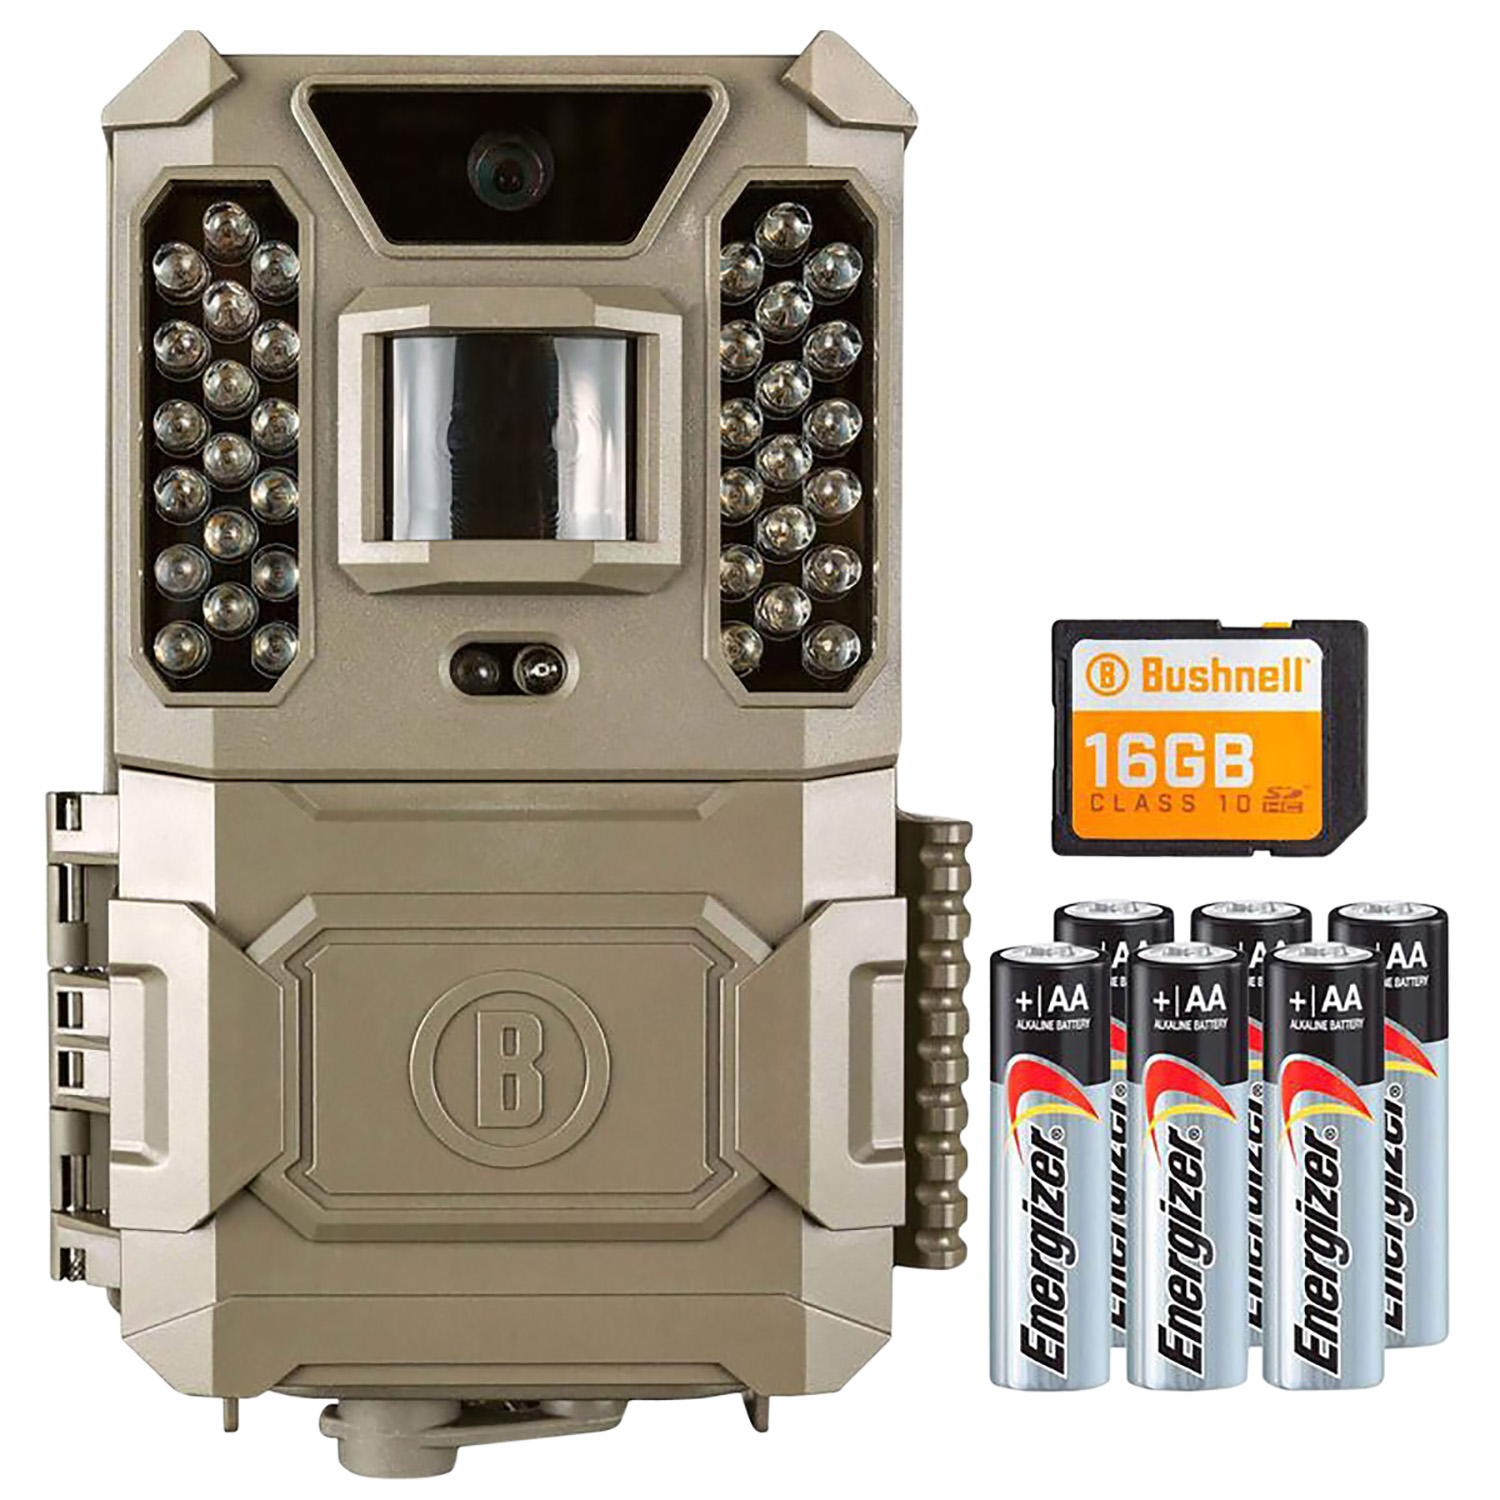 Primos 119932CB Prime Combo 24 MP Low Glow 36 LED Brown Adjustable AA Batteries and 8GB SD Card Included.